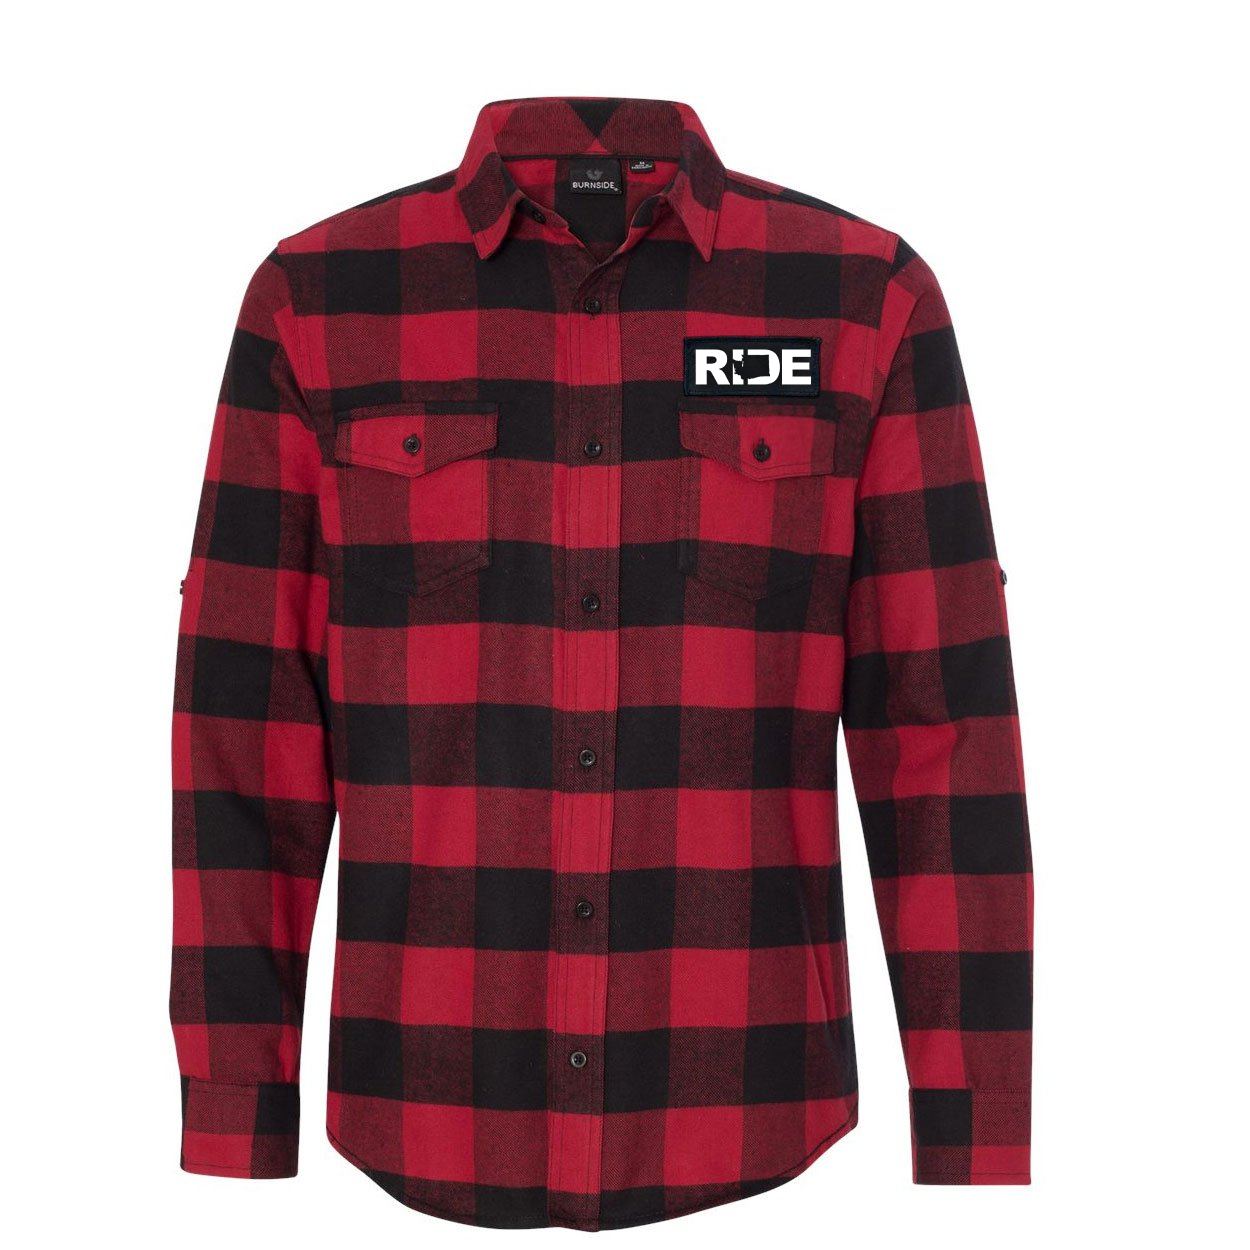 Ride Washington Classic Unisex Long Sleeve Woven Patch Flannel Shirt Red/Black Buffalo (White Logo)